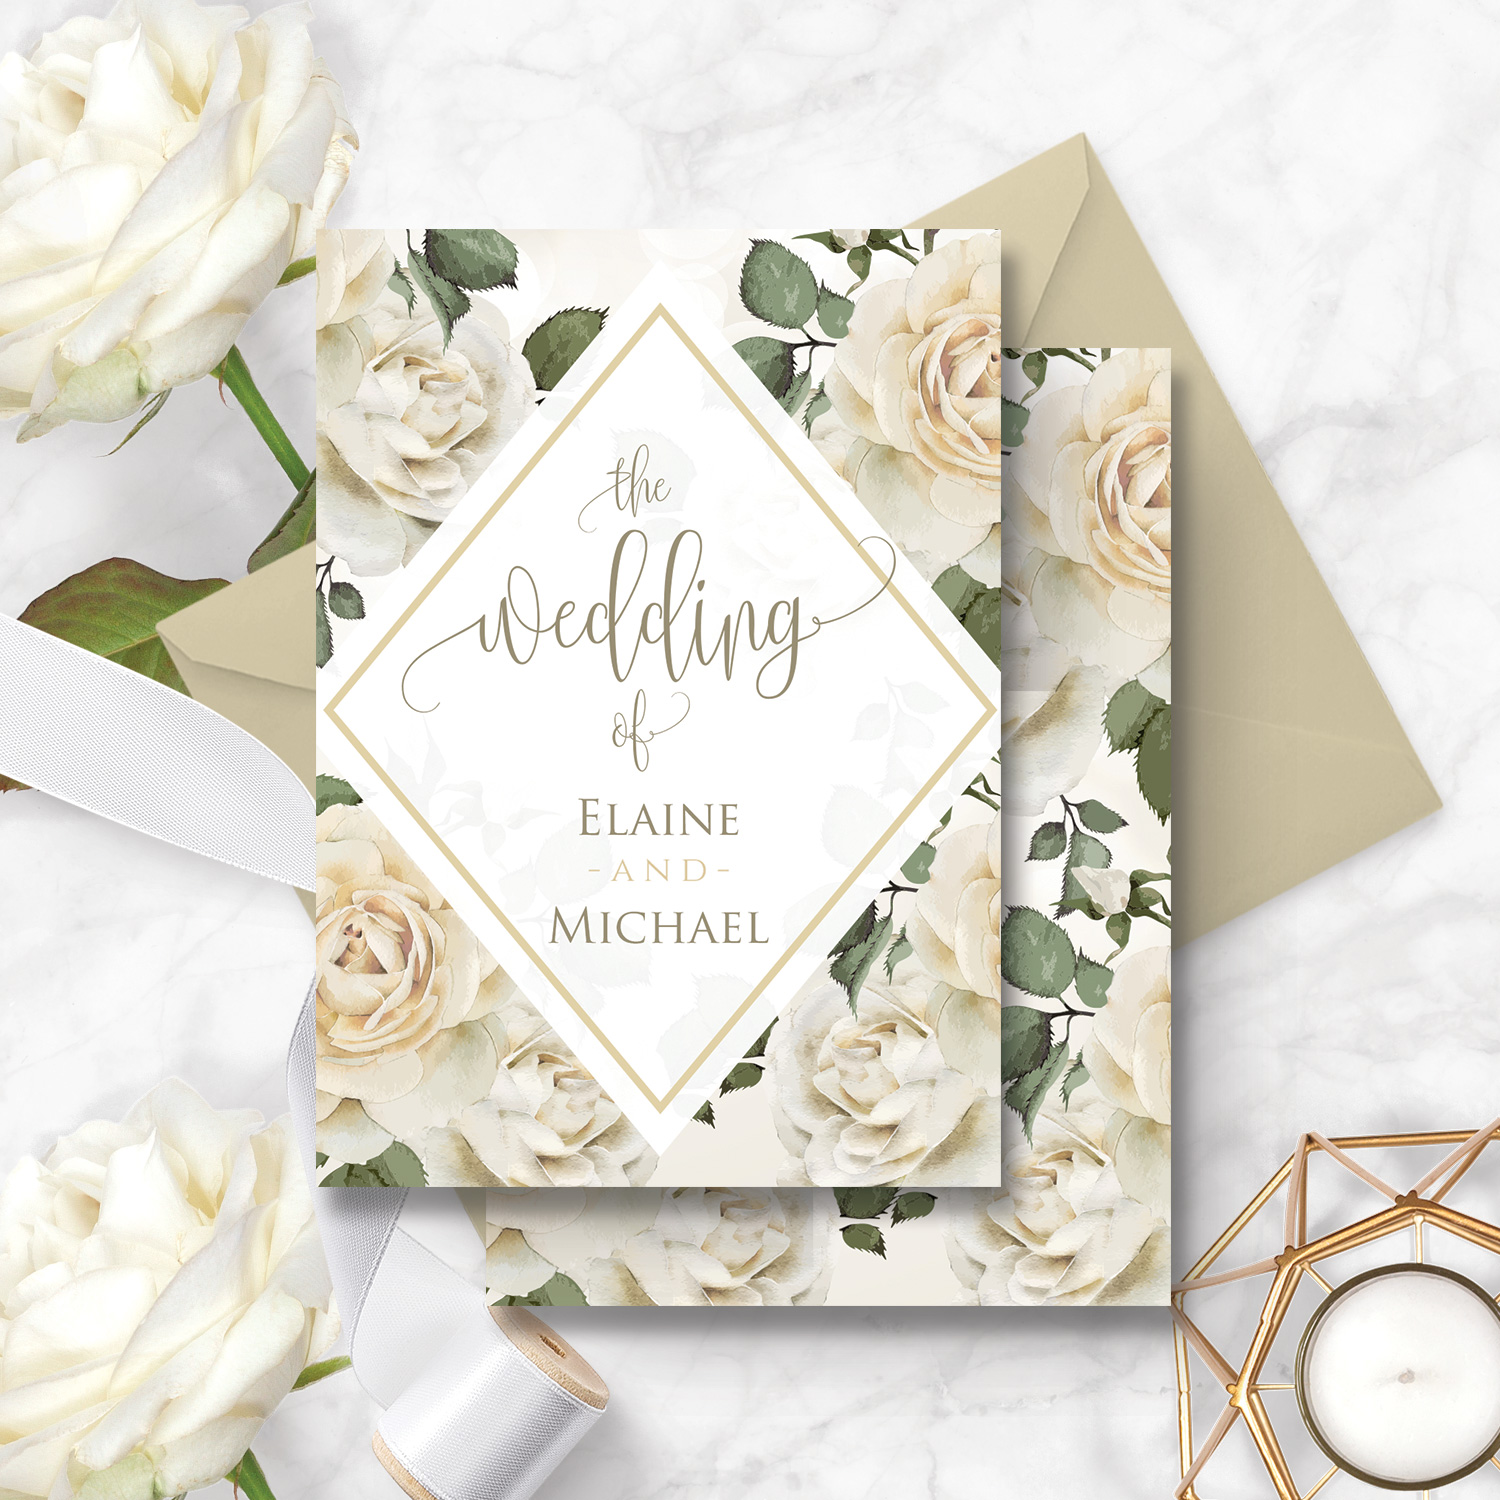 How And When To Place An Order For Wedding Invitations The Invite